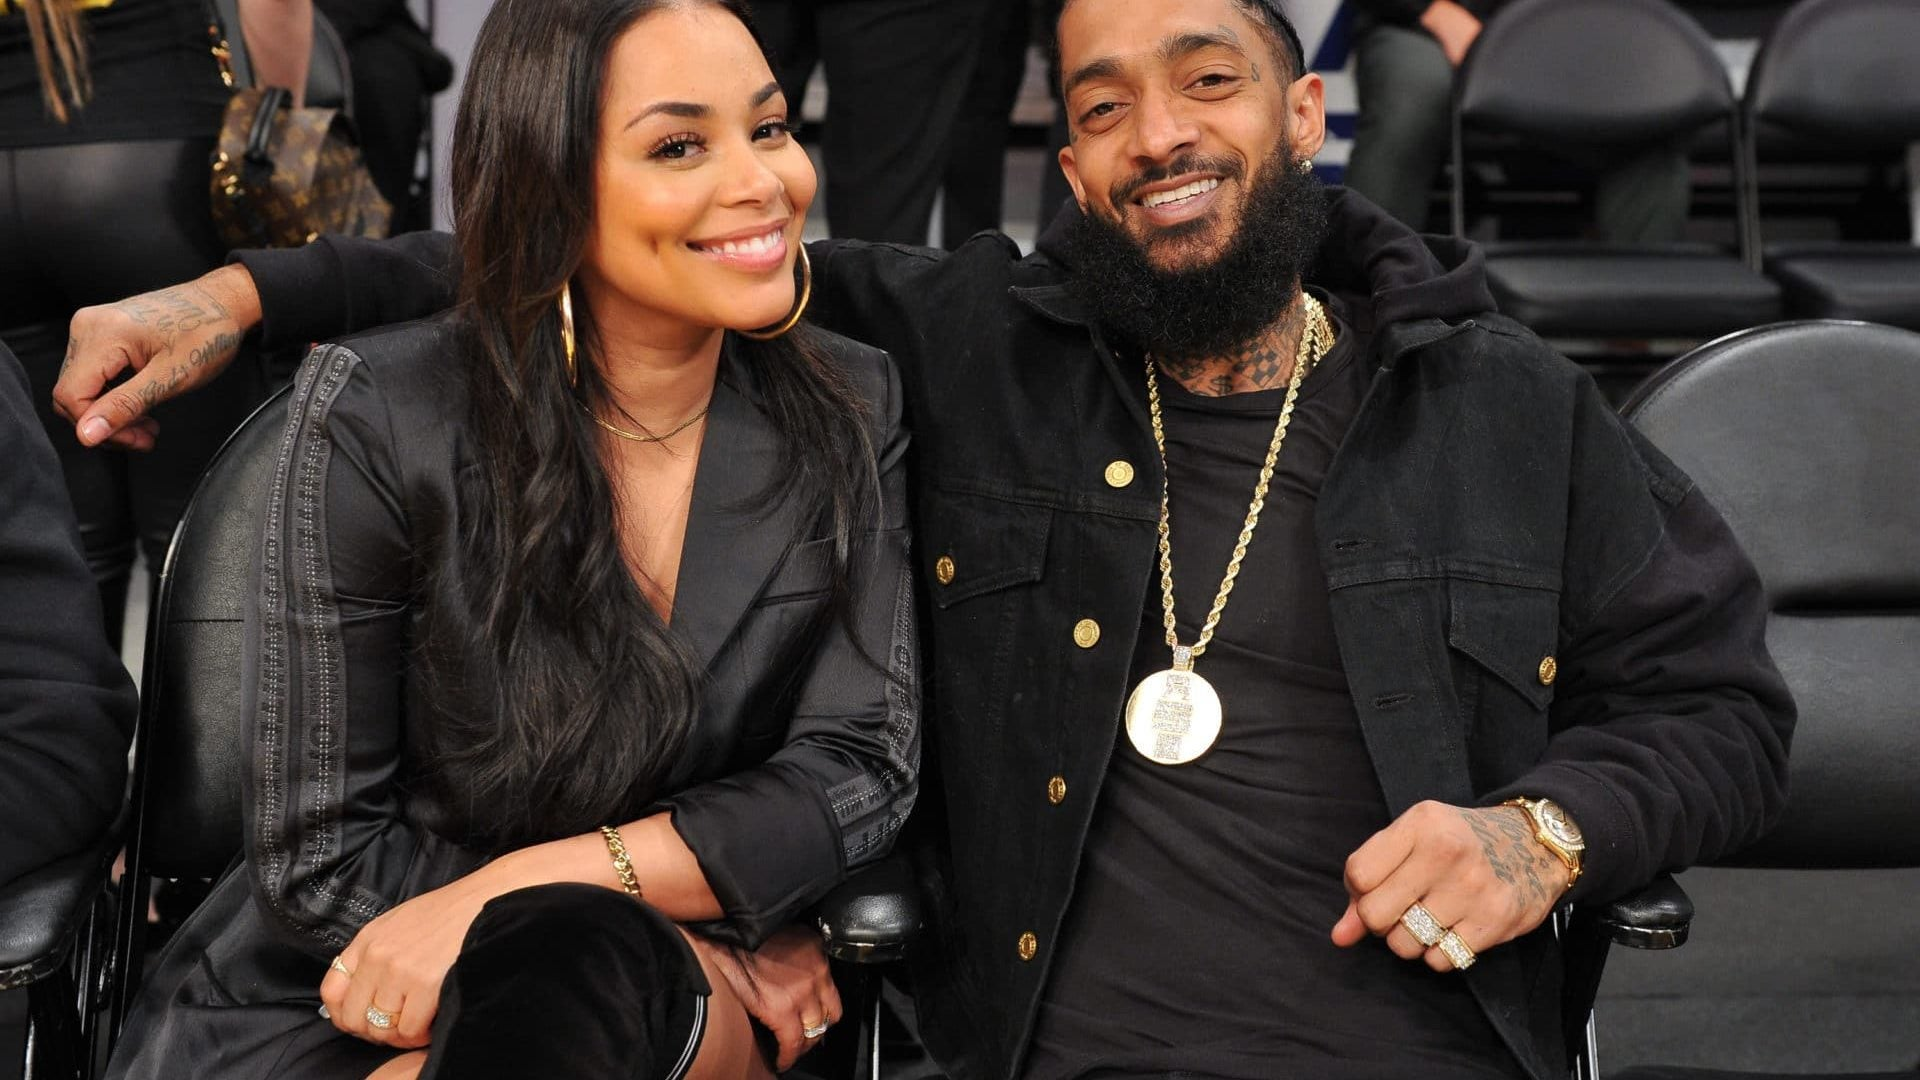 Lauren London Vows To Love Nipsey Hussle 'Forever' In A Touching Post